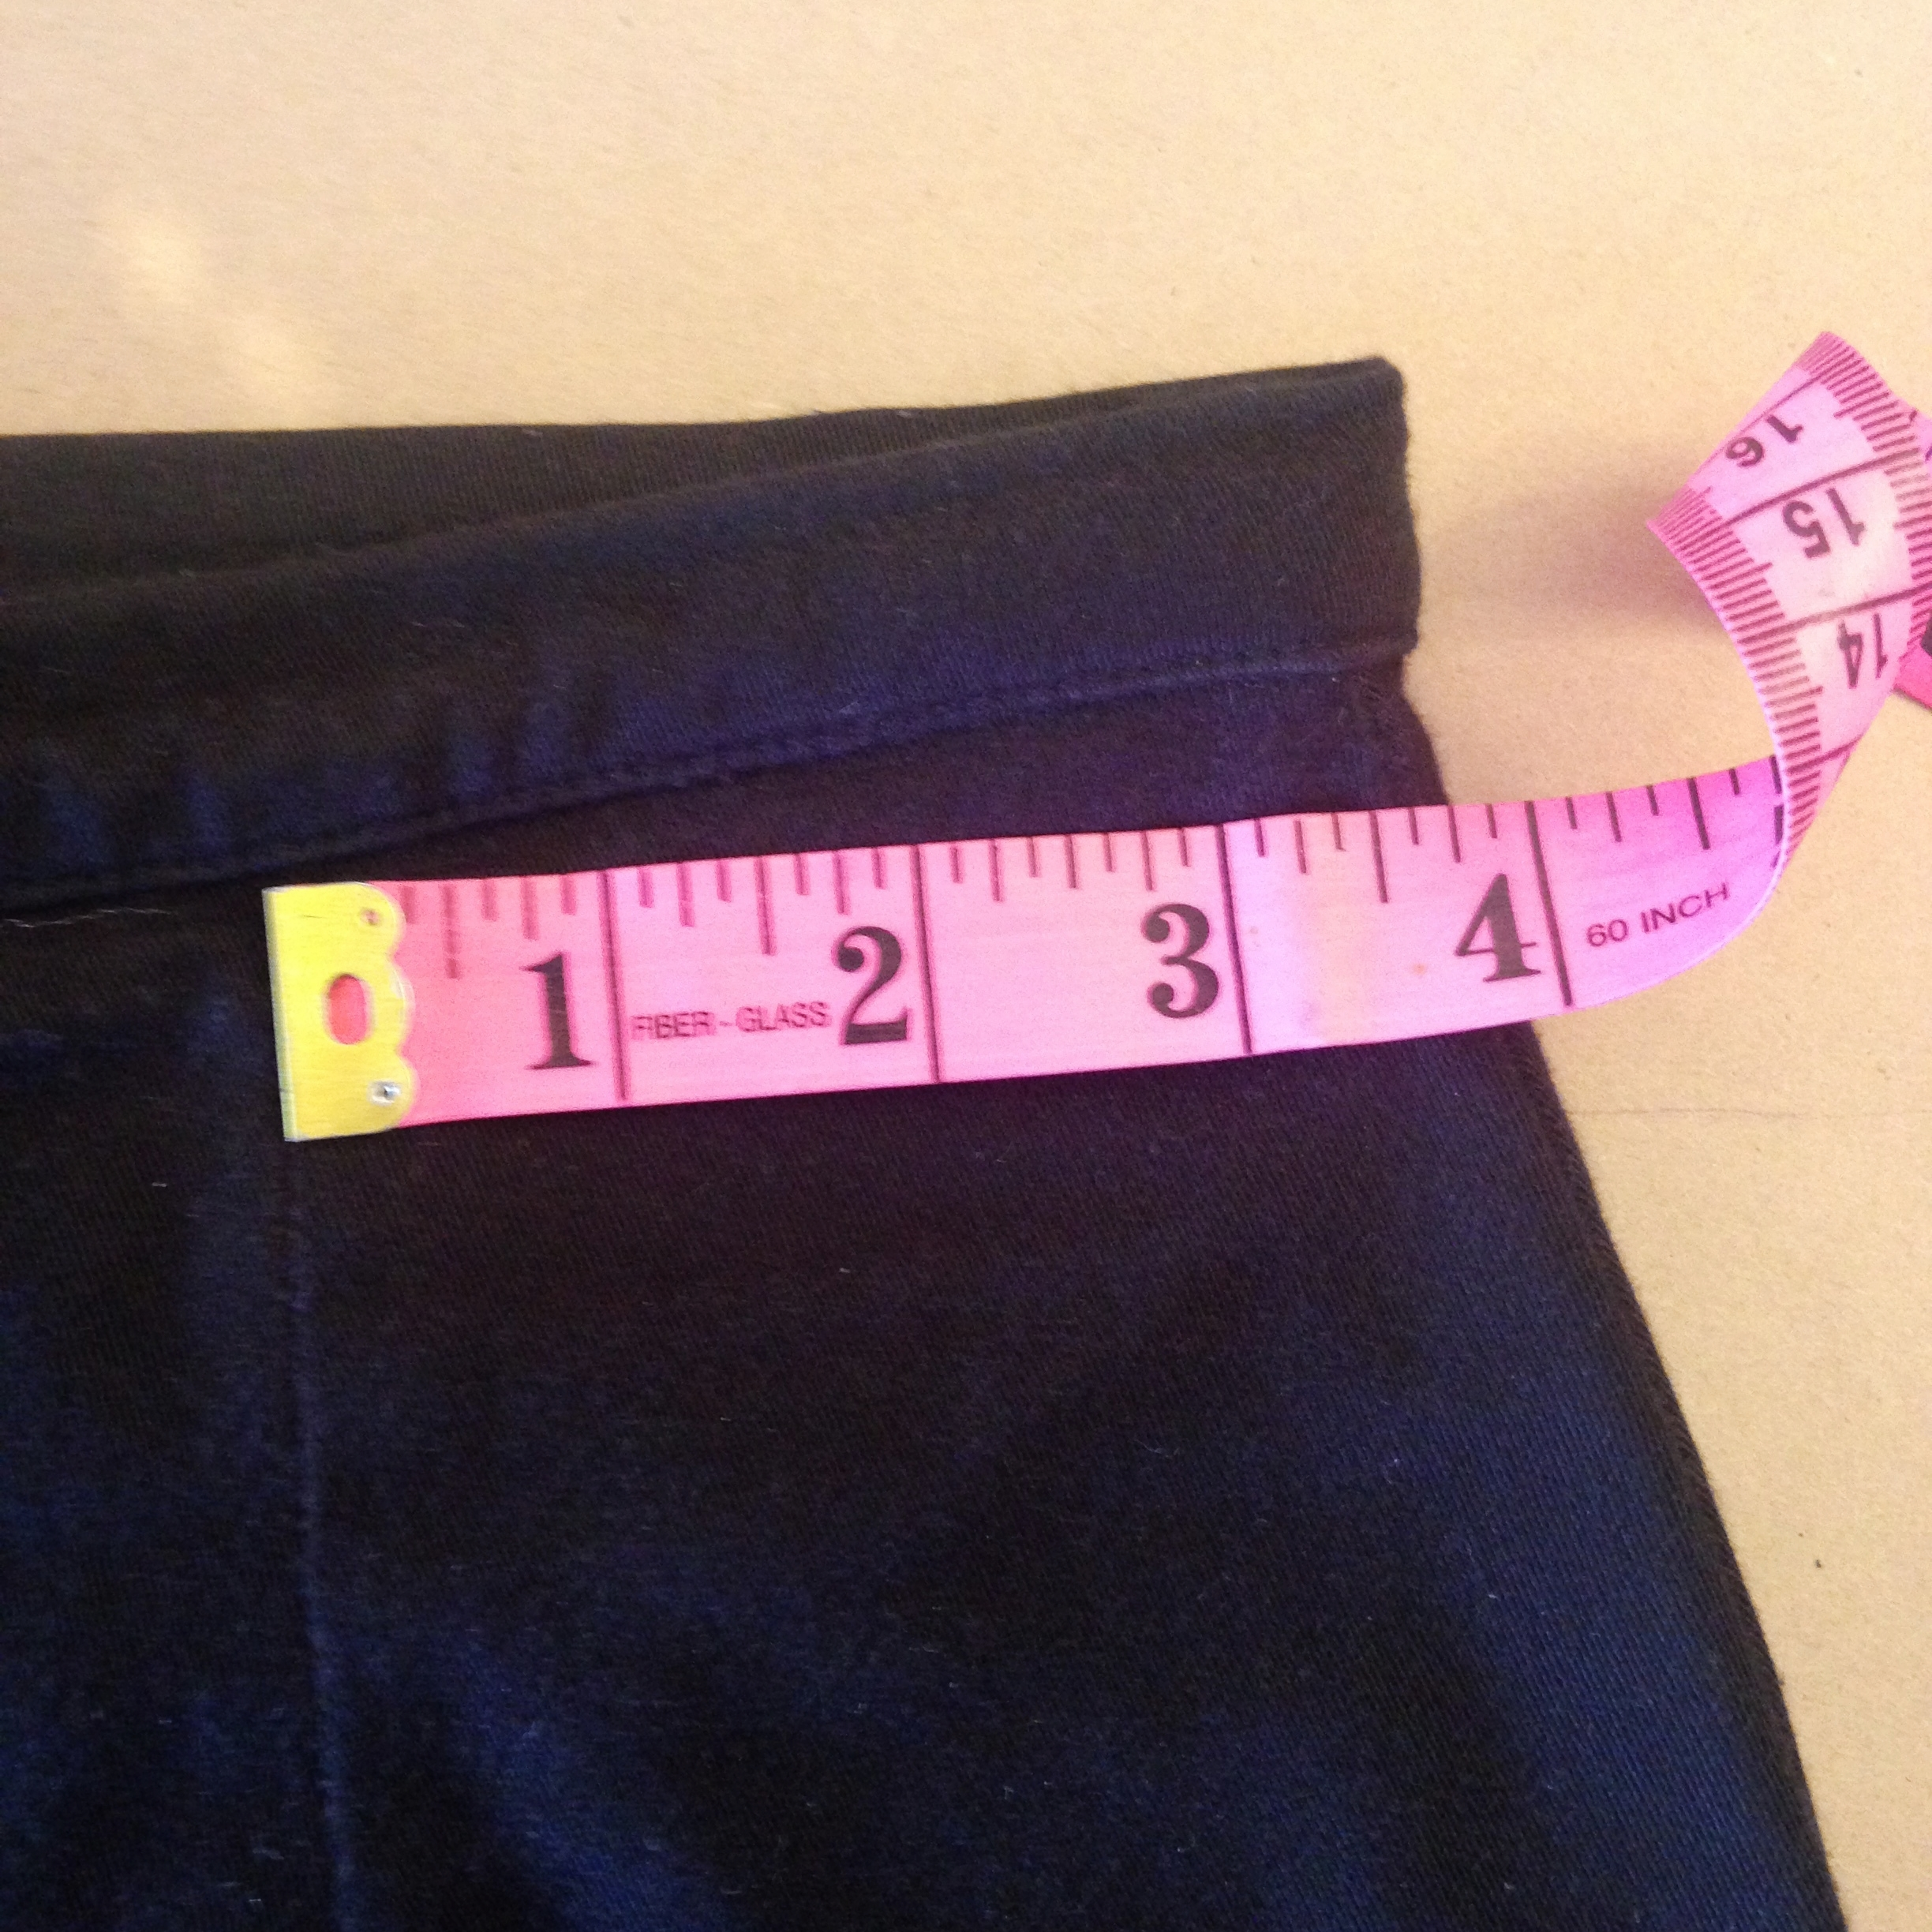 Check Measure for Pant Copy